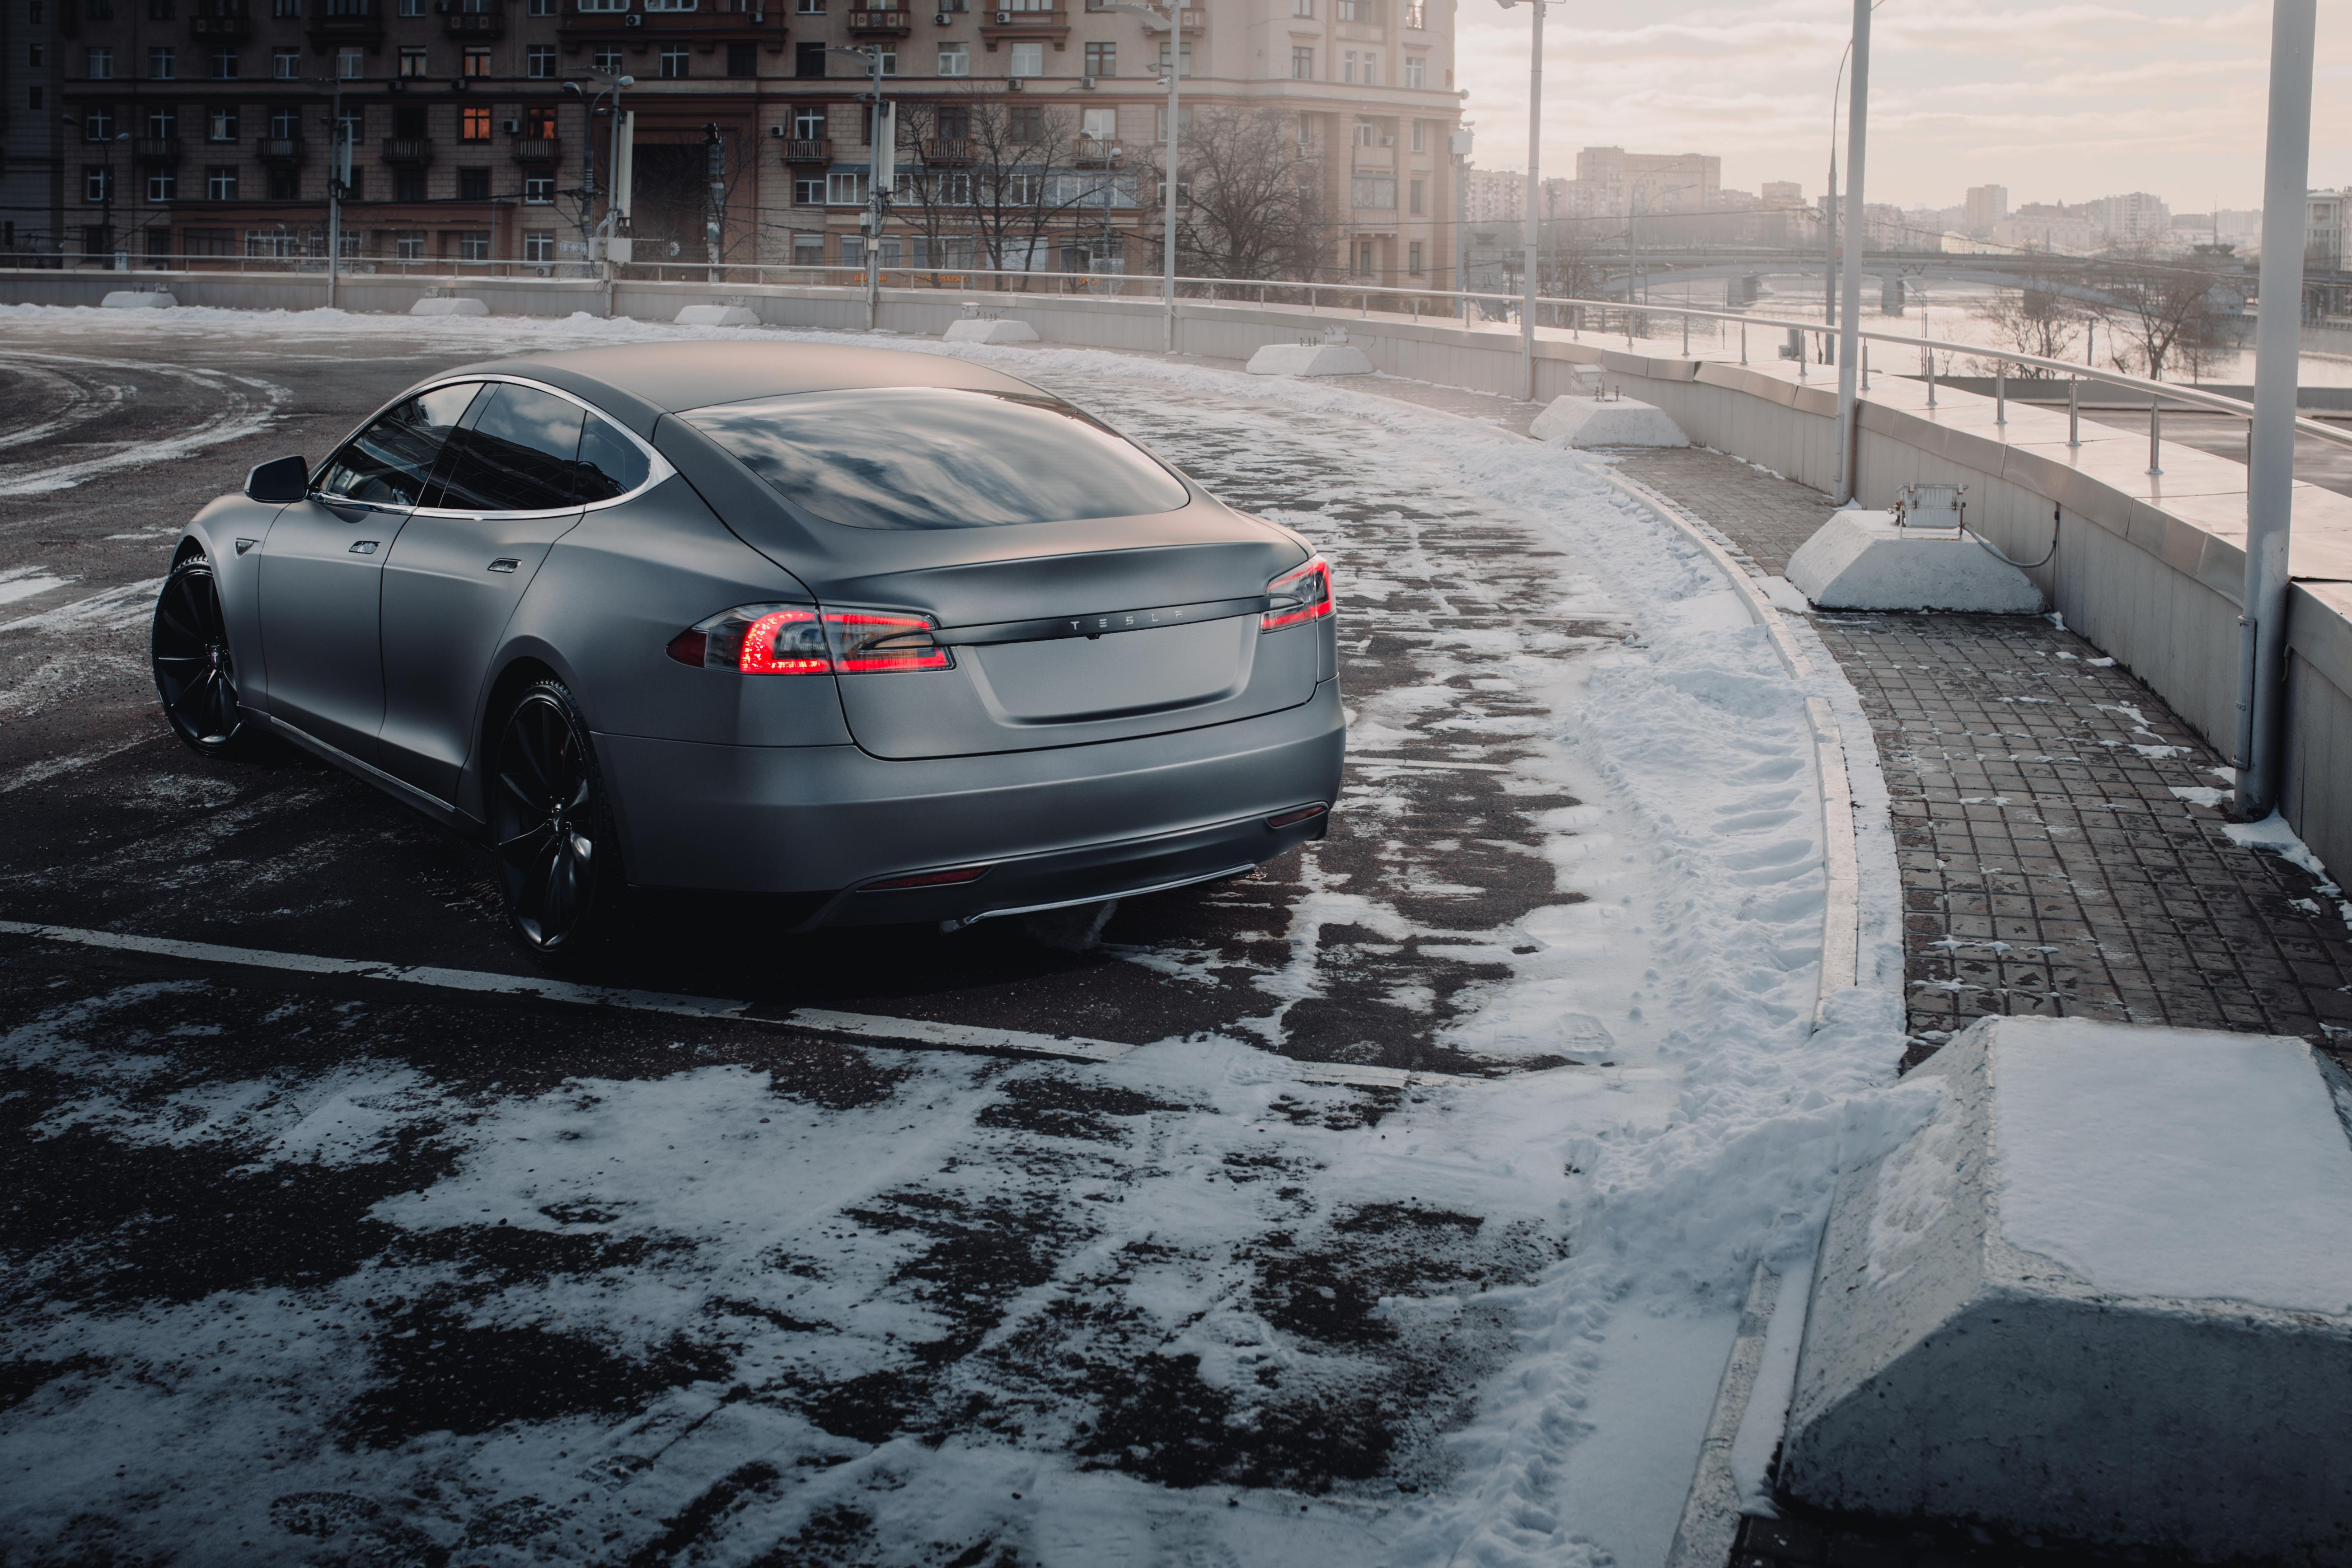 When Will Tesla Push Gasoline Cars into Museums?